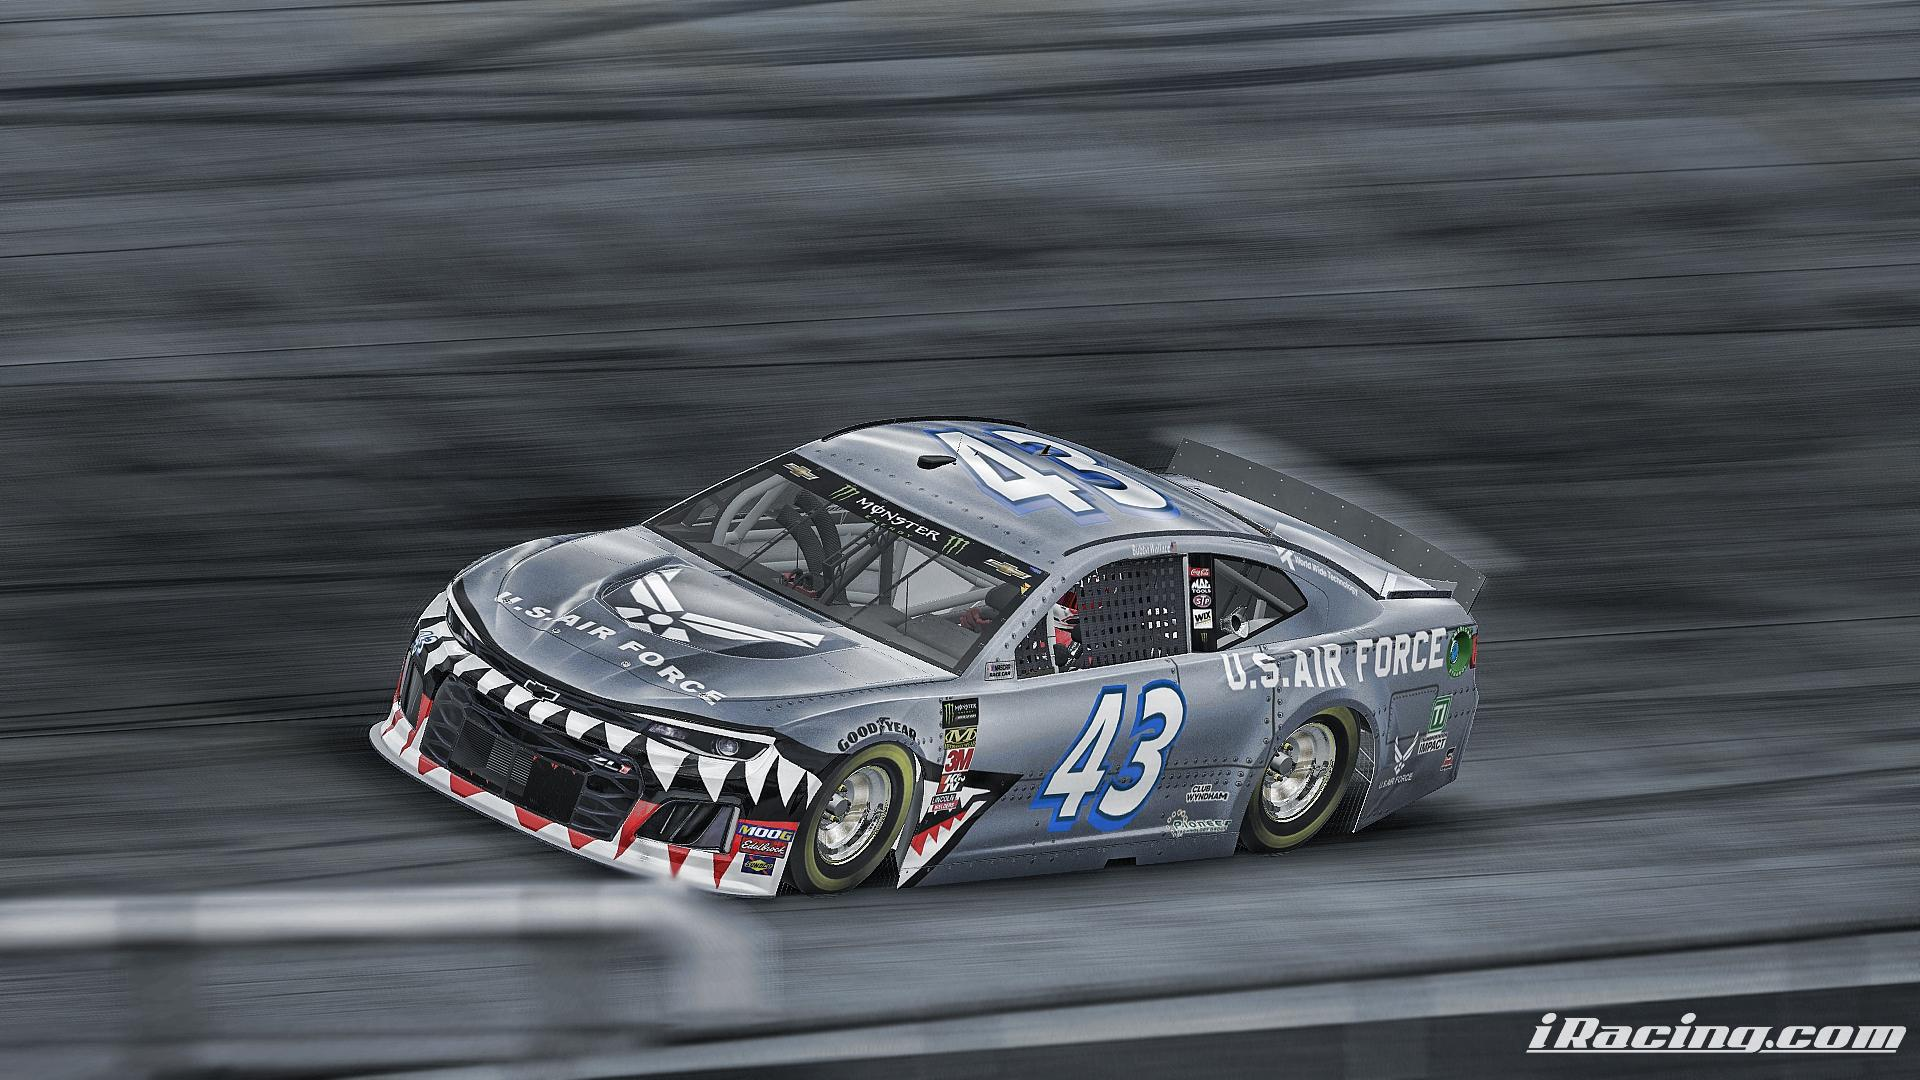 Preview of Bubba Wallace US Air Force by Adam Chapman